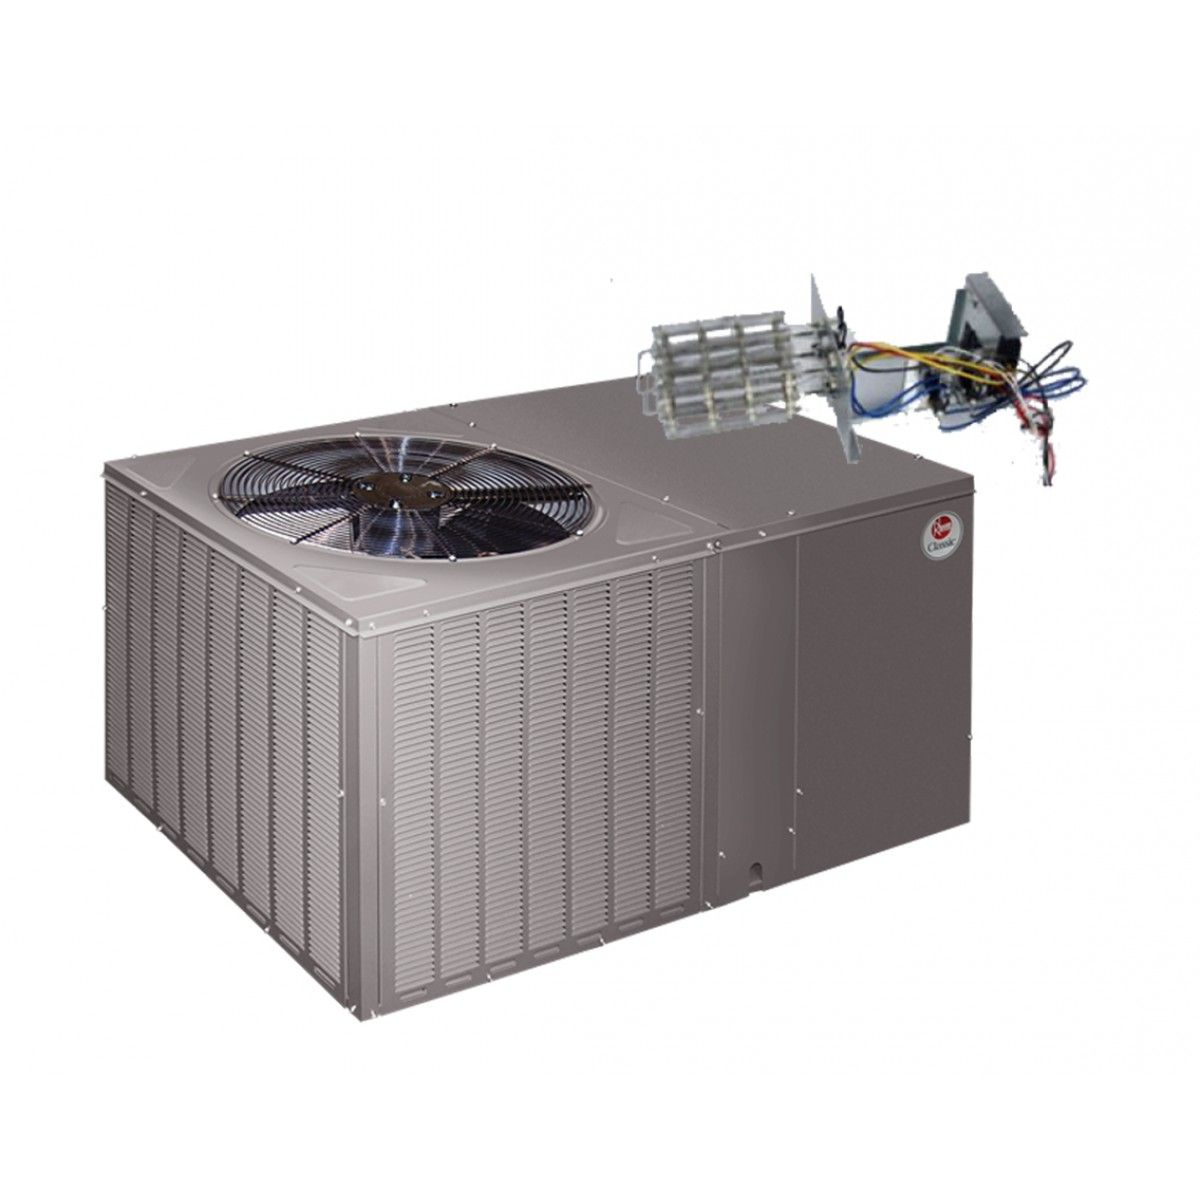 Rheem 14 Seer 4 0 Ton Straight Cool Package Unit With Electric Heat